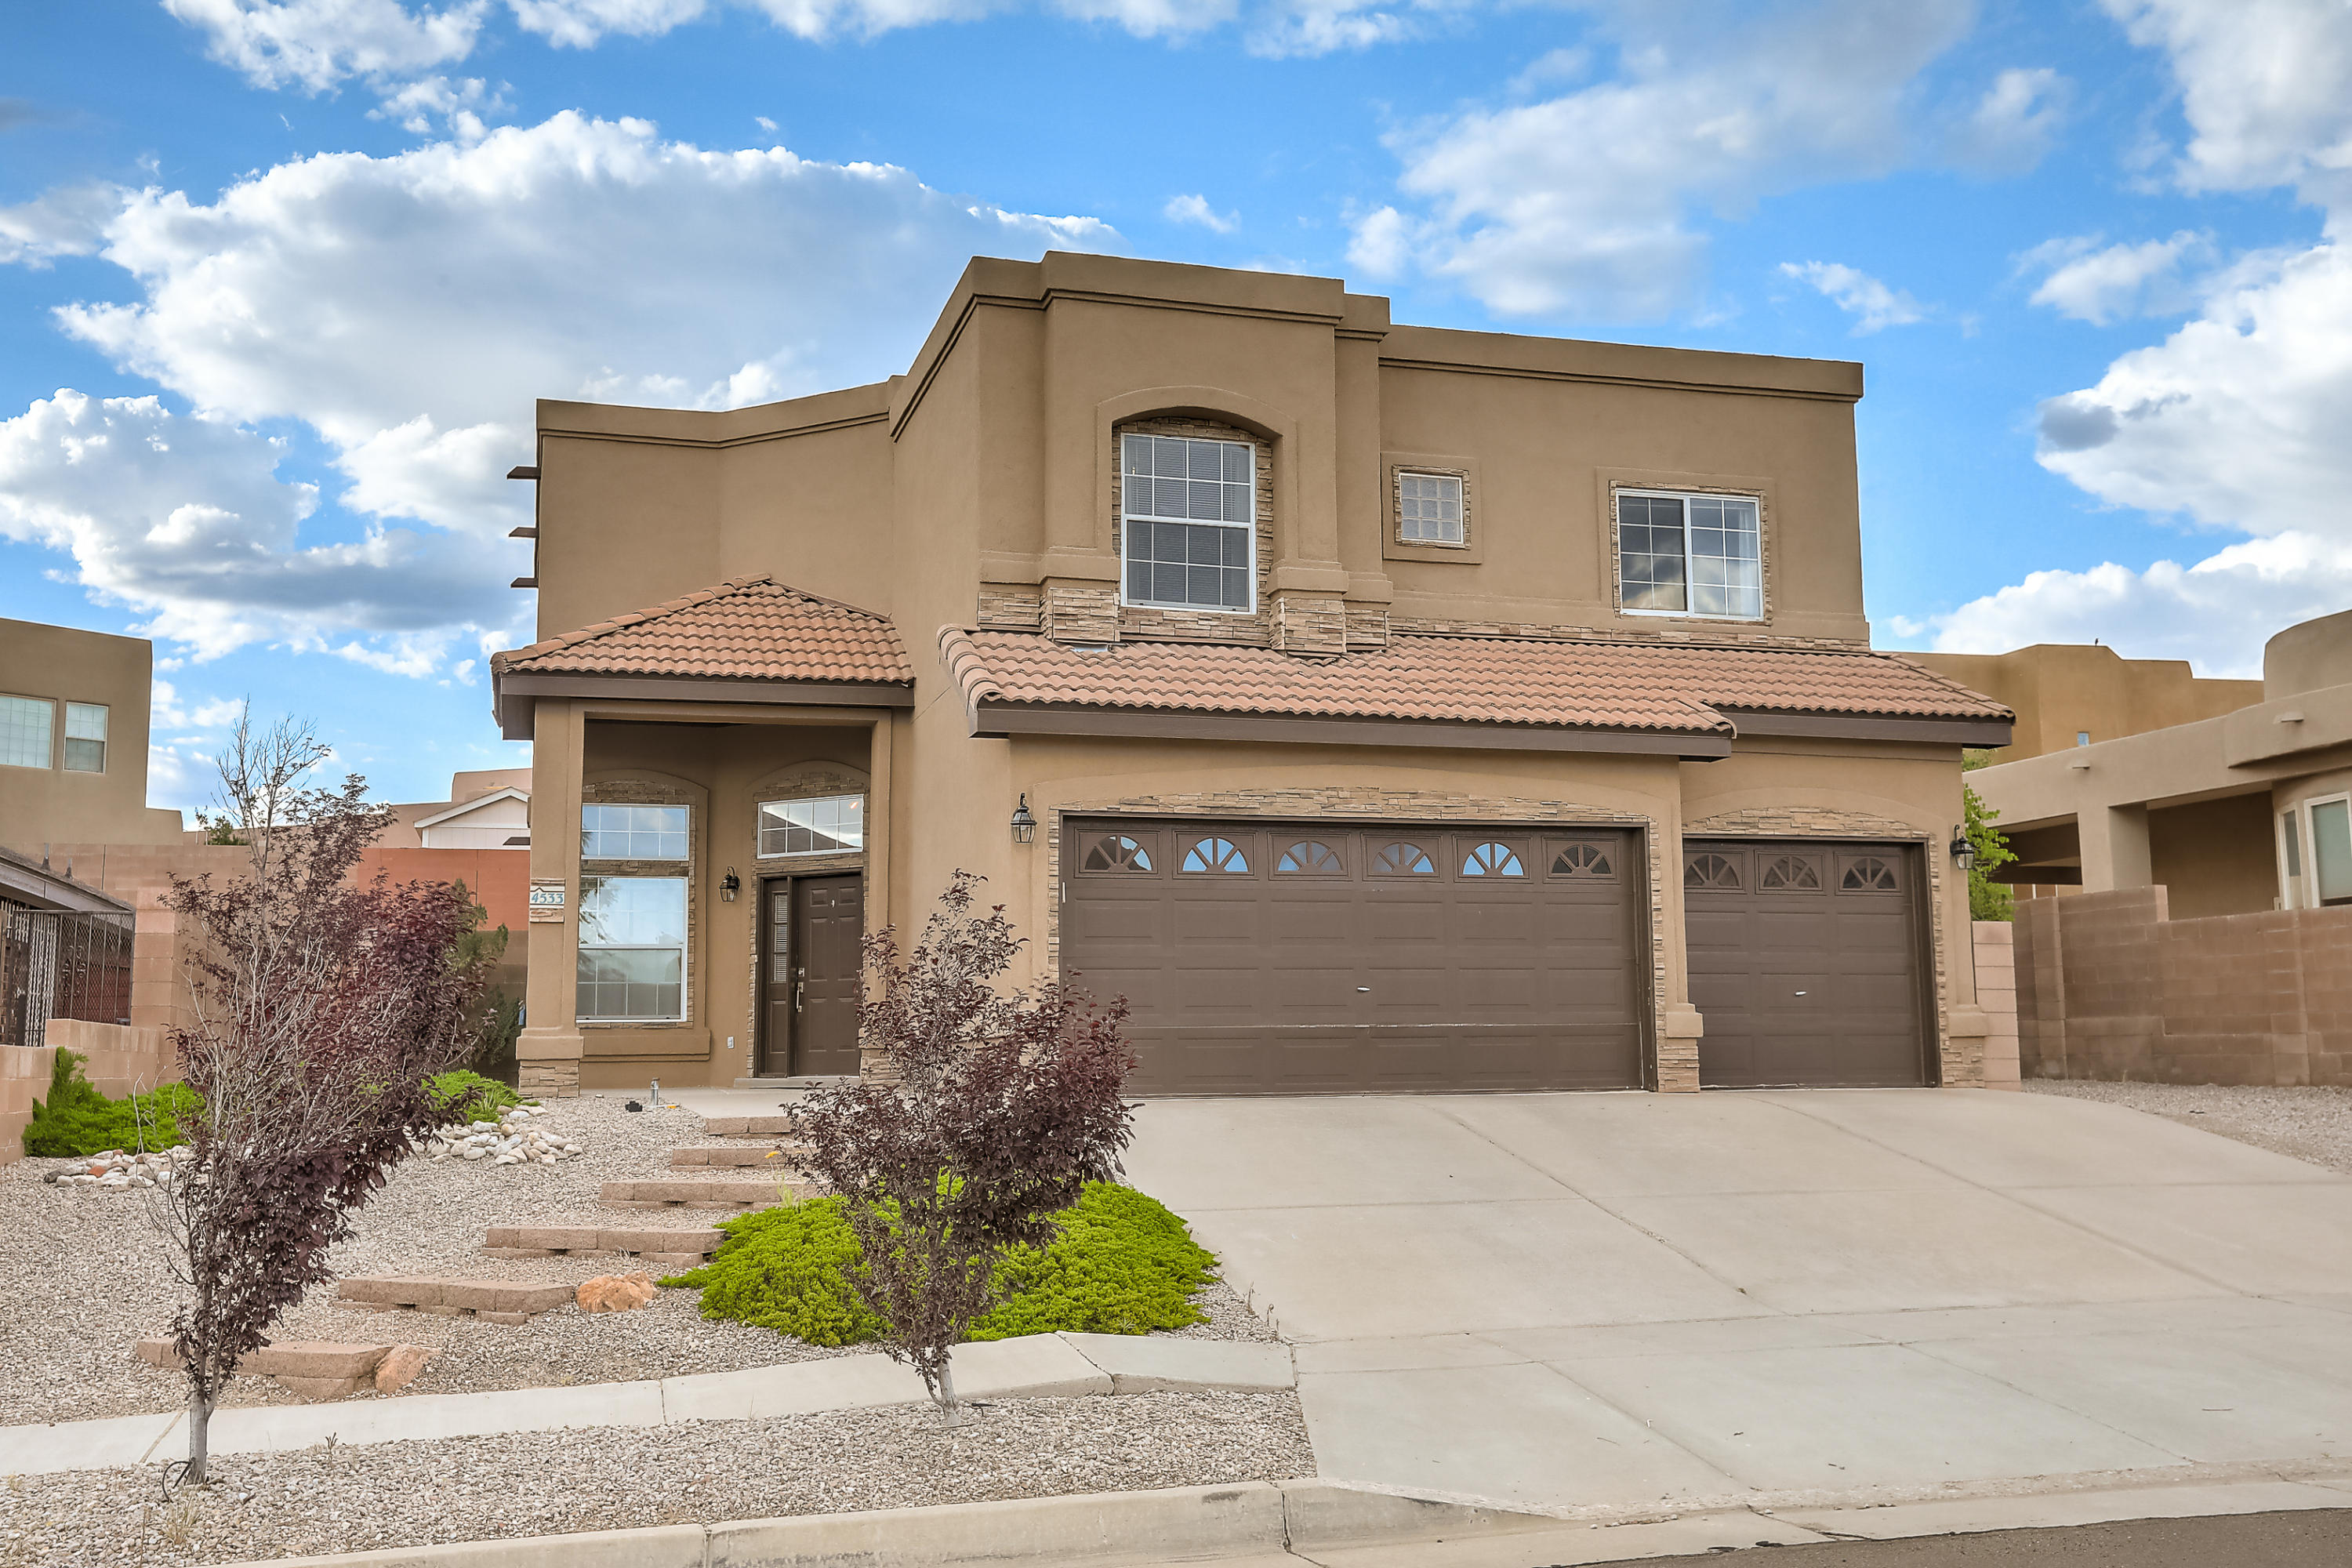 4533 NW Arrowhead Avenue, Northwest Albuquerque and Northwest Heights, New Mexico